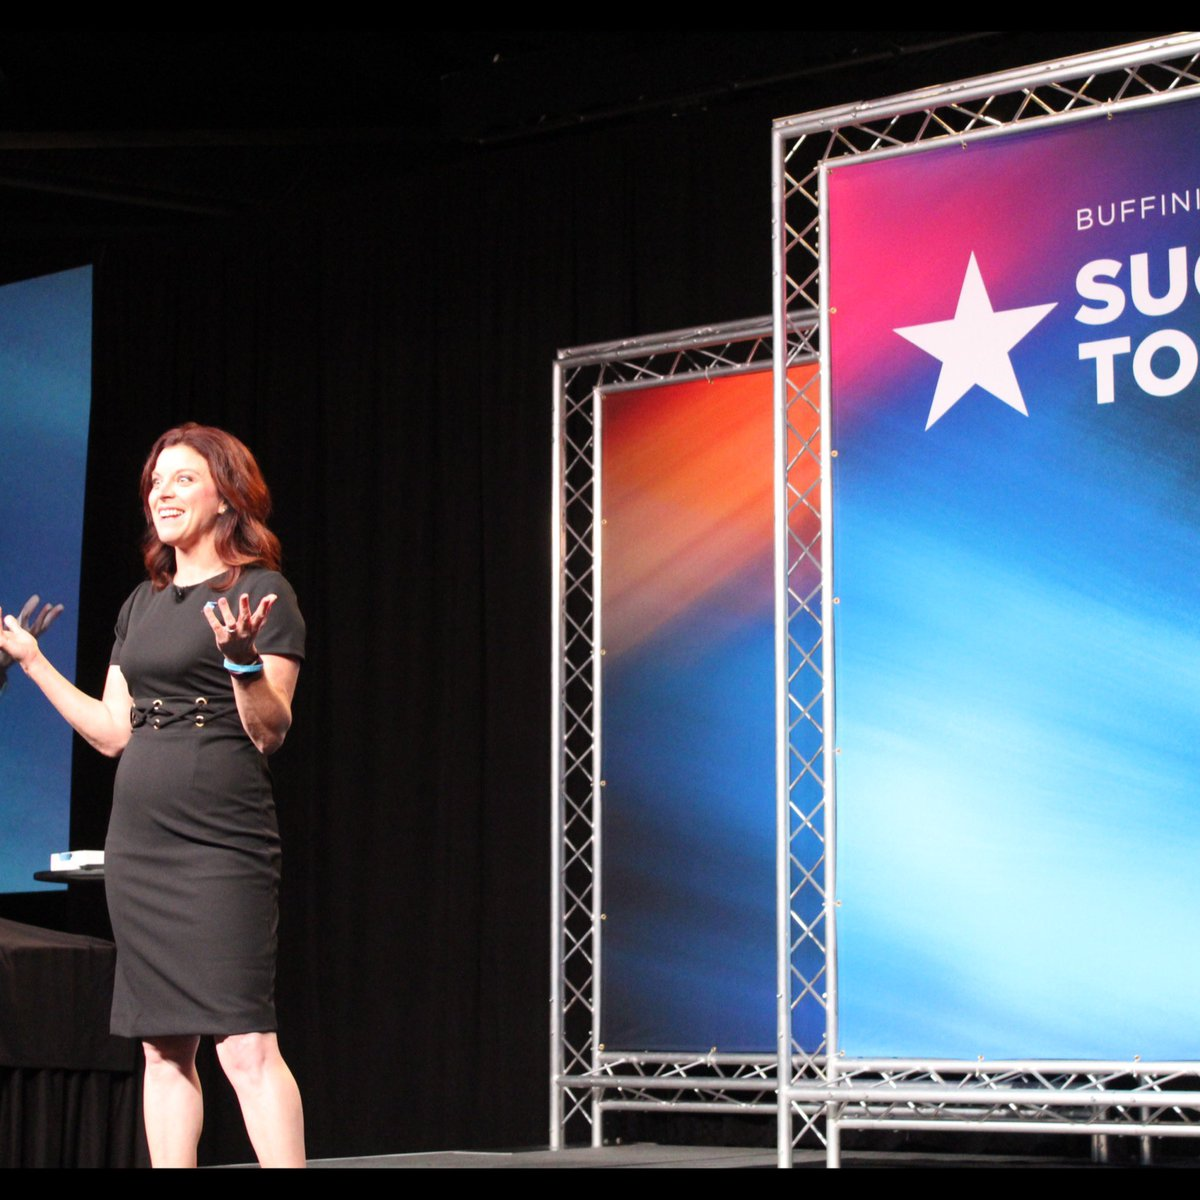 You CAN have it all and @jaimenowak is here to tell you how. #SuccessTour